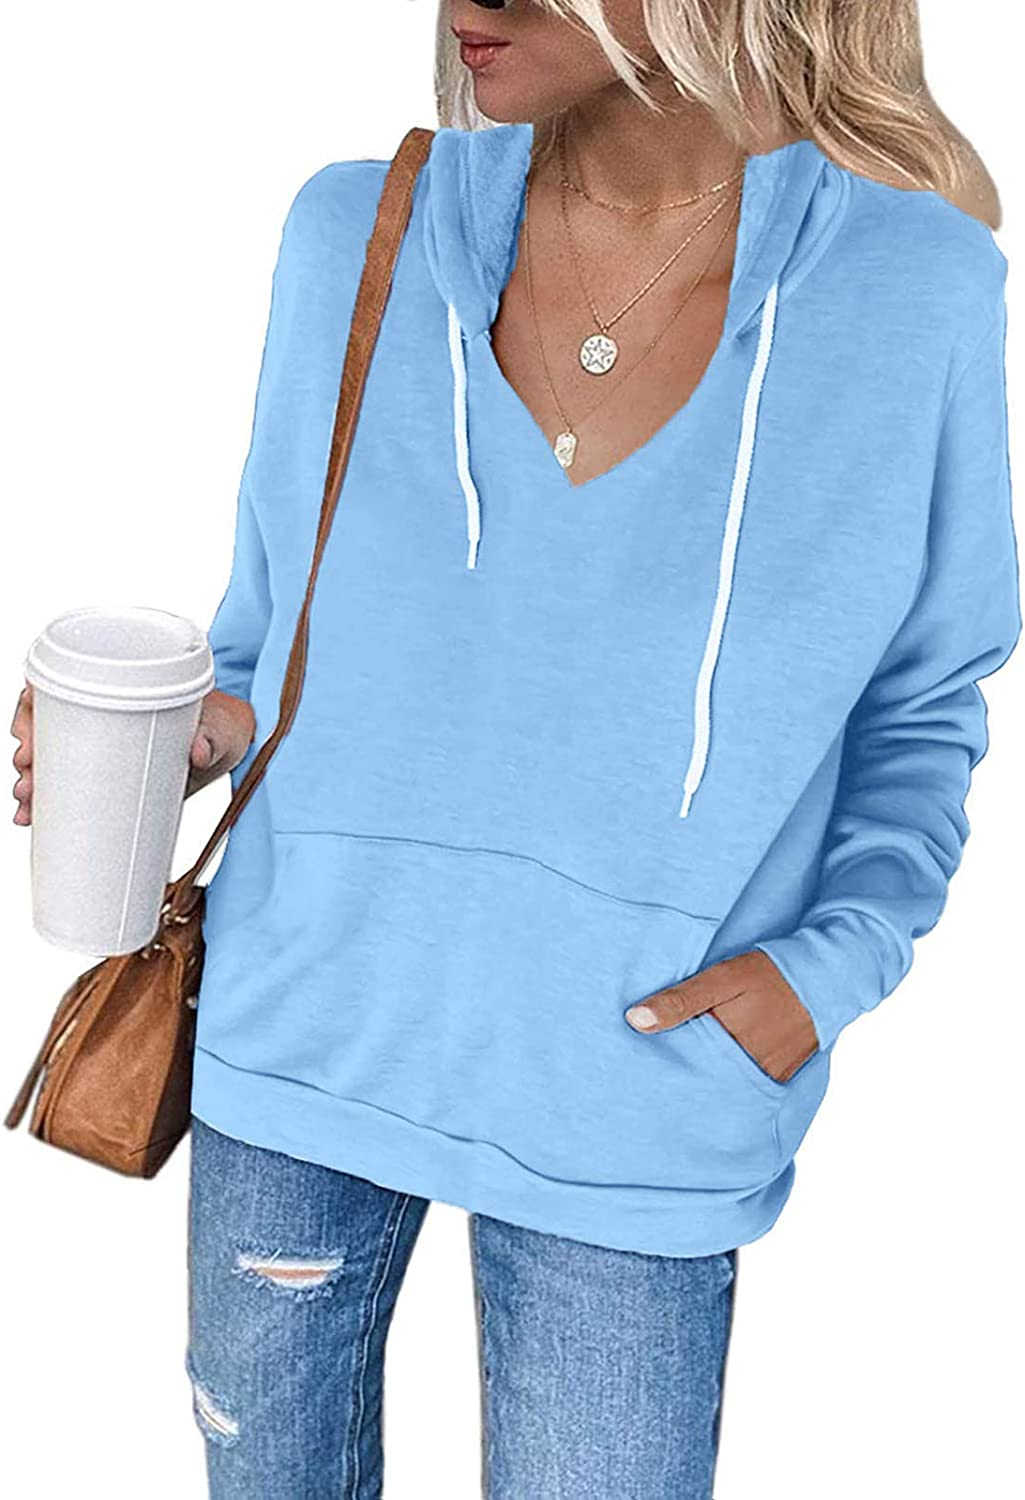 TAYBAGH Womens Hoodies Zip Up, Womens Solid Long Sleeve Hooded Pullover Lightweight Sweatshirts Jacket Coat with Pocket